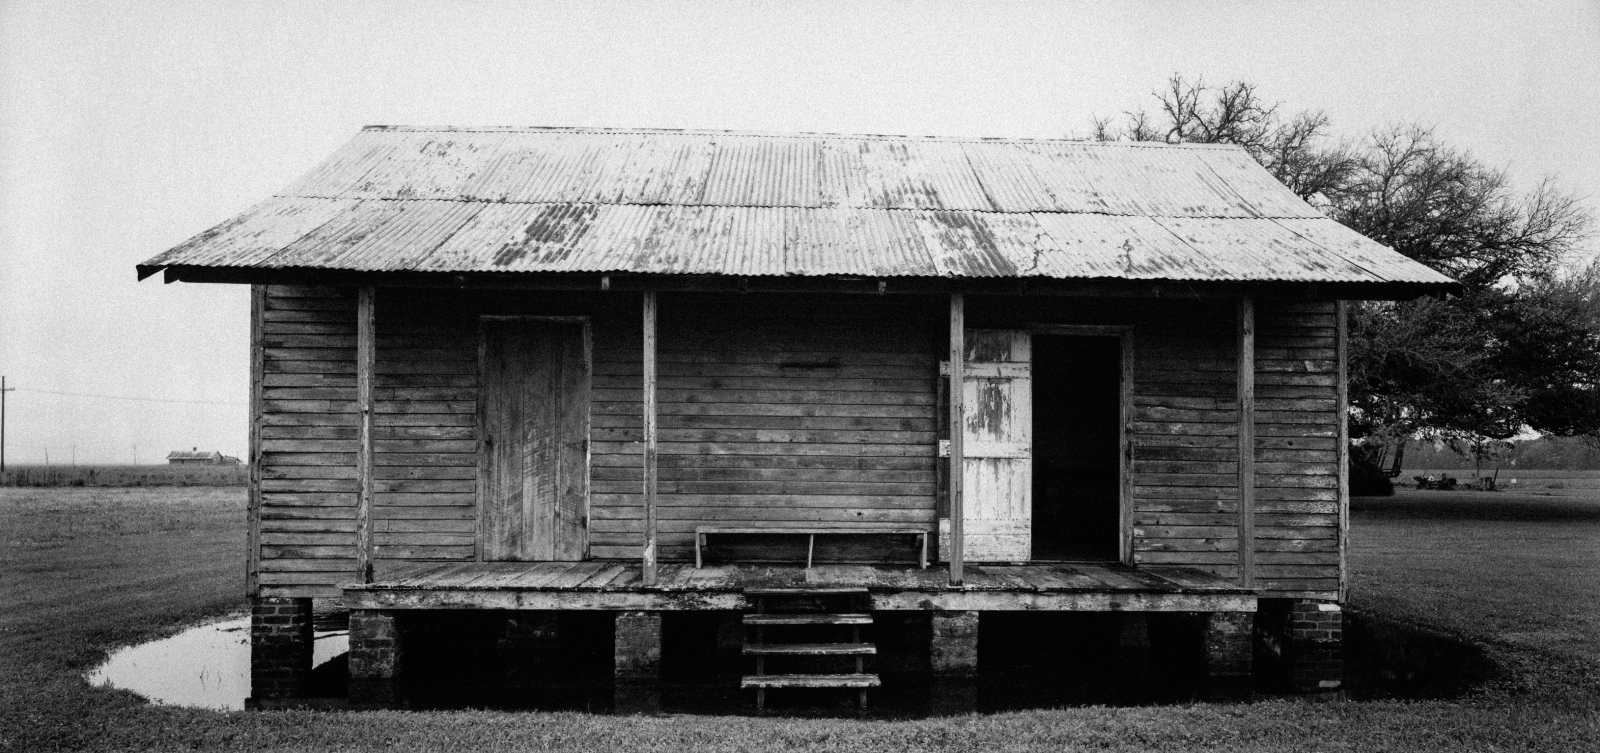 "Slave Dwelling No. 10: St James Parish, Louisiana Silver gelatin photograph handprinted from an 8x16"" film negative."